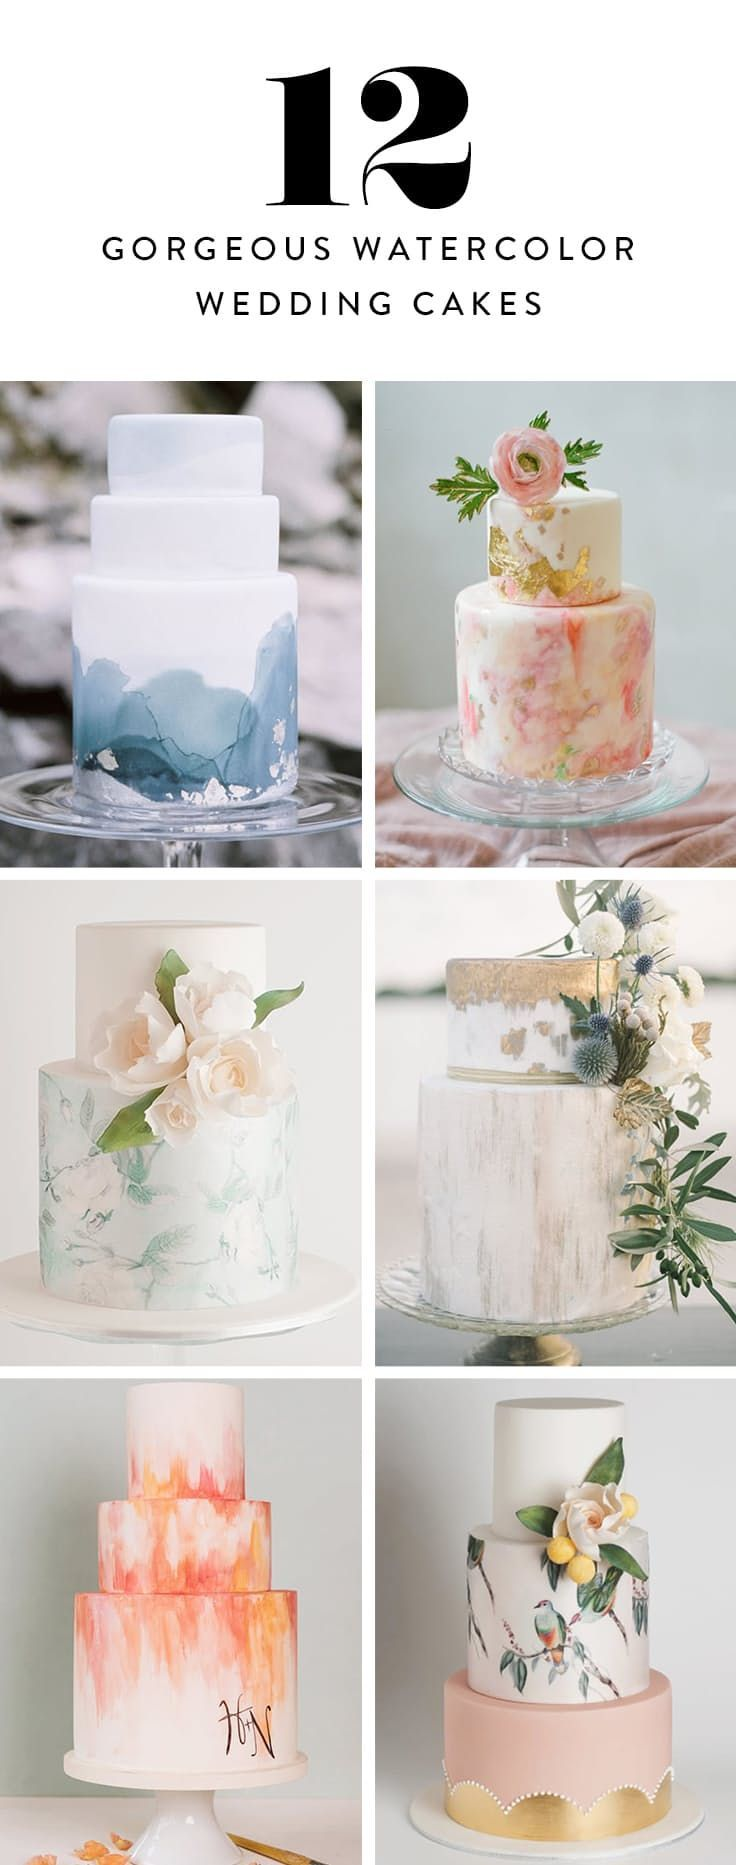 Watercolor Cakes Are the Next Big Wedding Trend via @PureWow